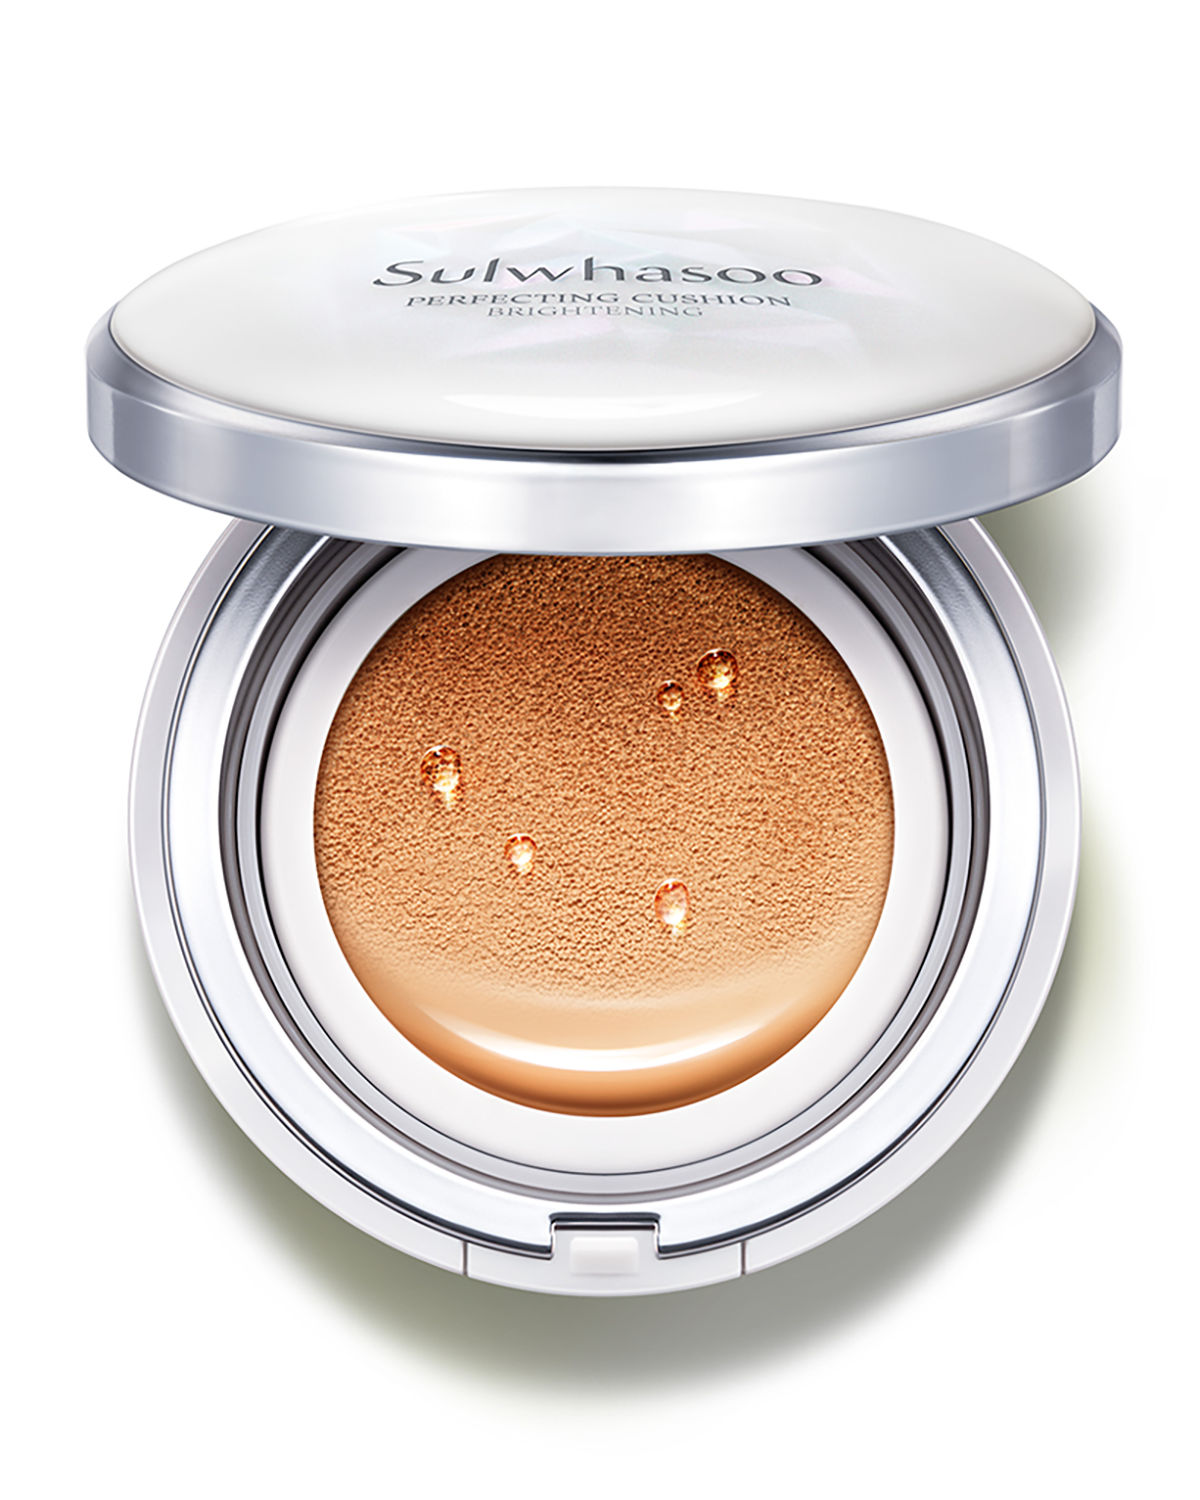 Sulwhasoo Perfecting Cushion Brightening SPF 50+, 30g